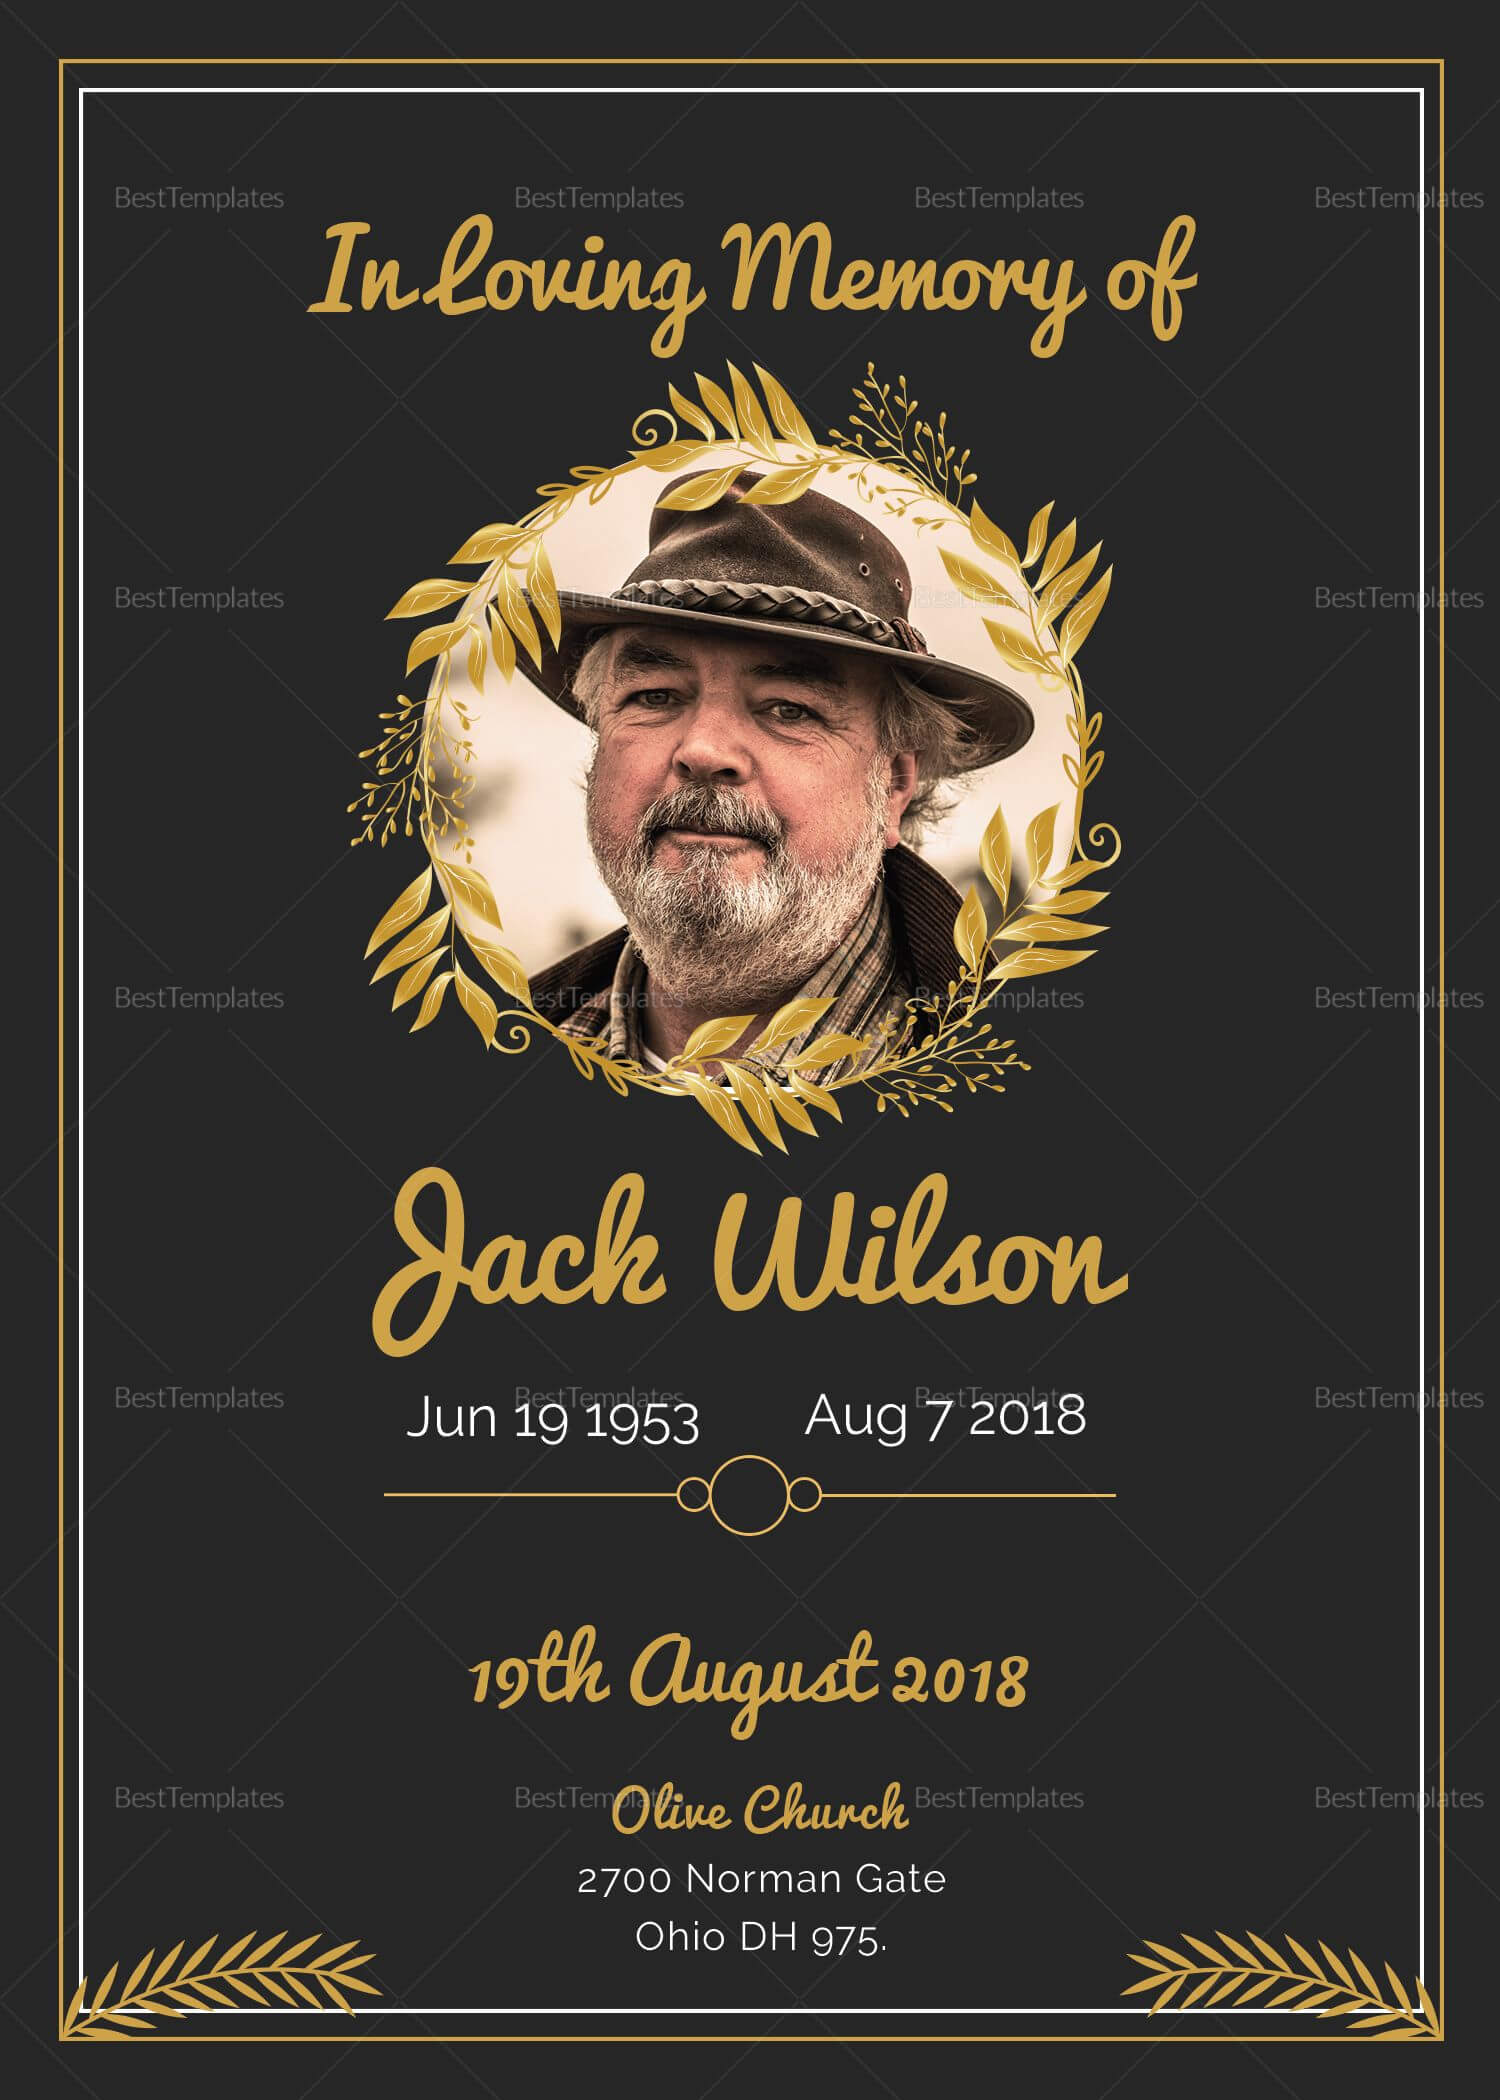 Pino Free Jay On Celebration Of Life | Funeral Pertaining To Funeral Invitation Card Template